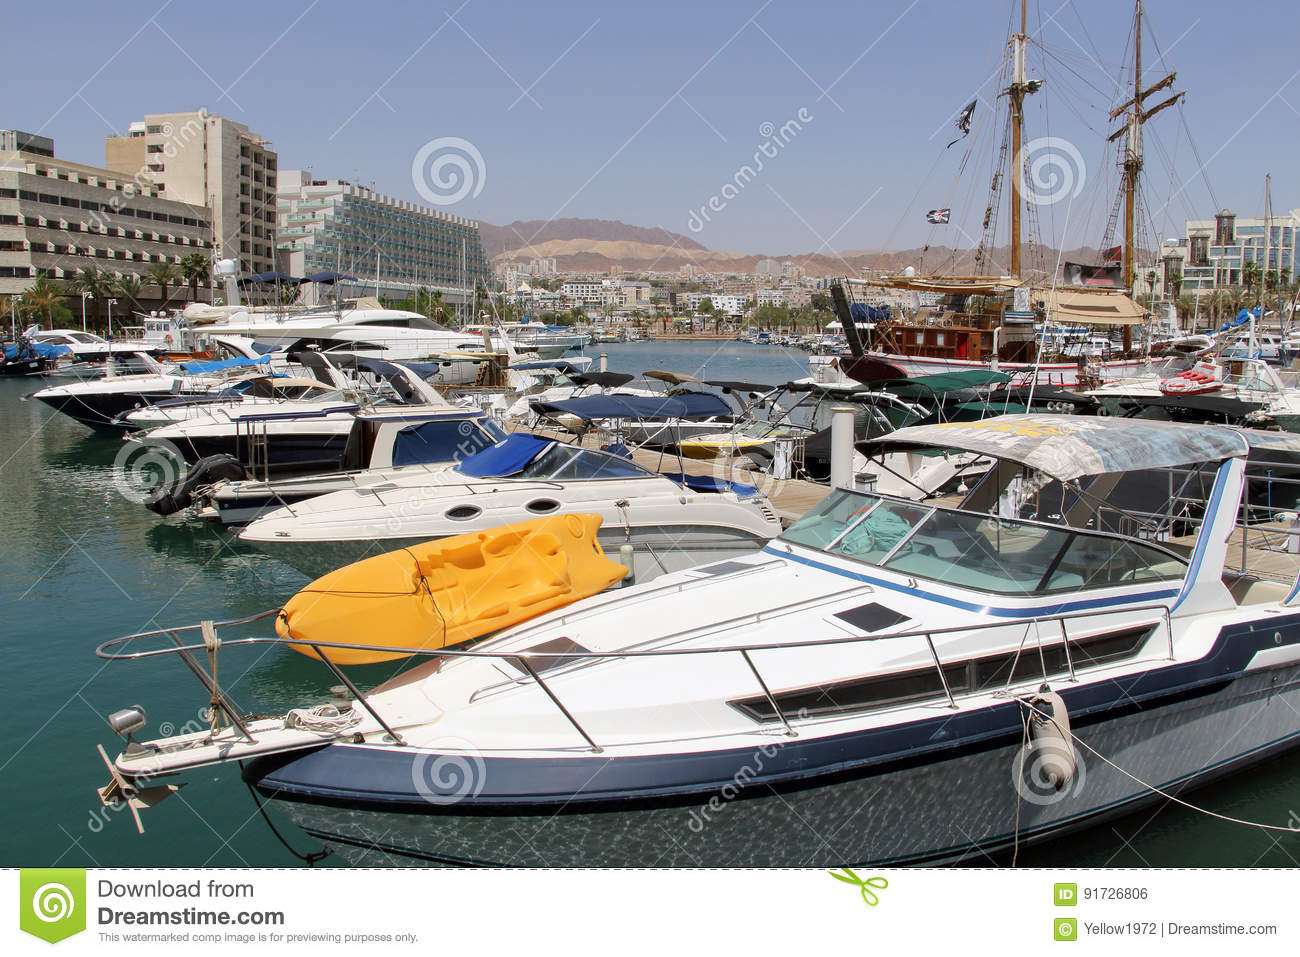 Yachts and boats in marina of Eilat.